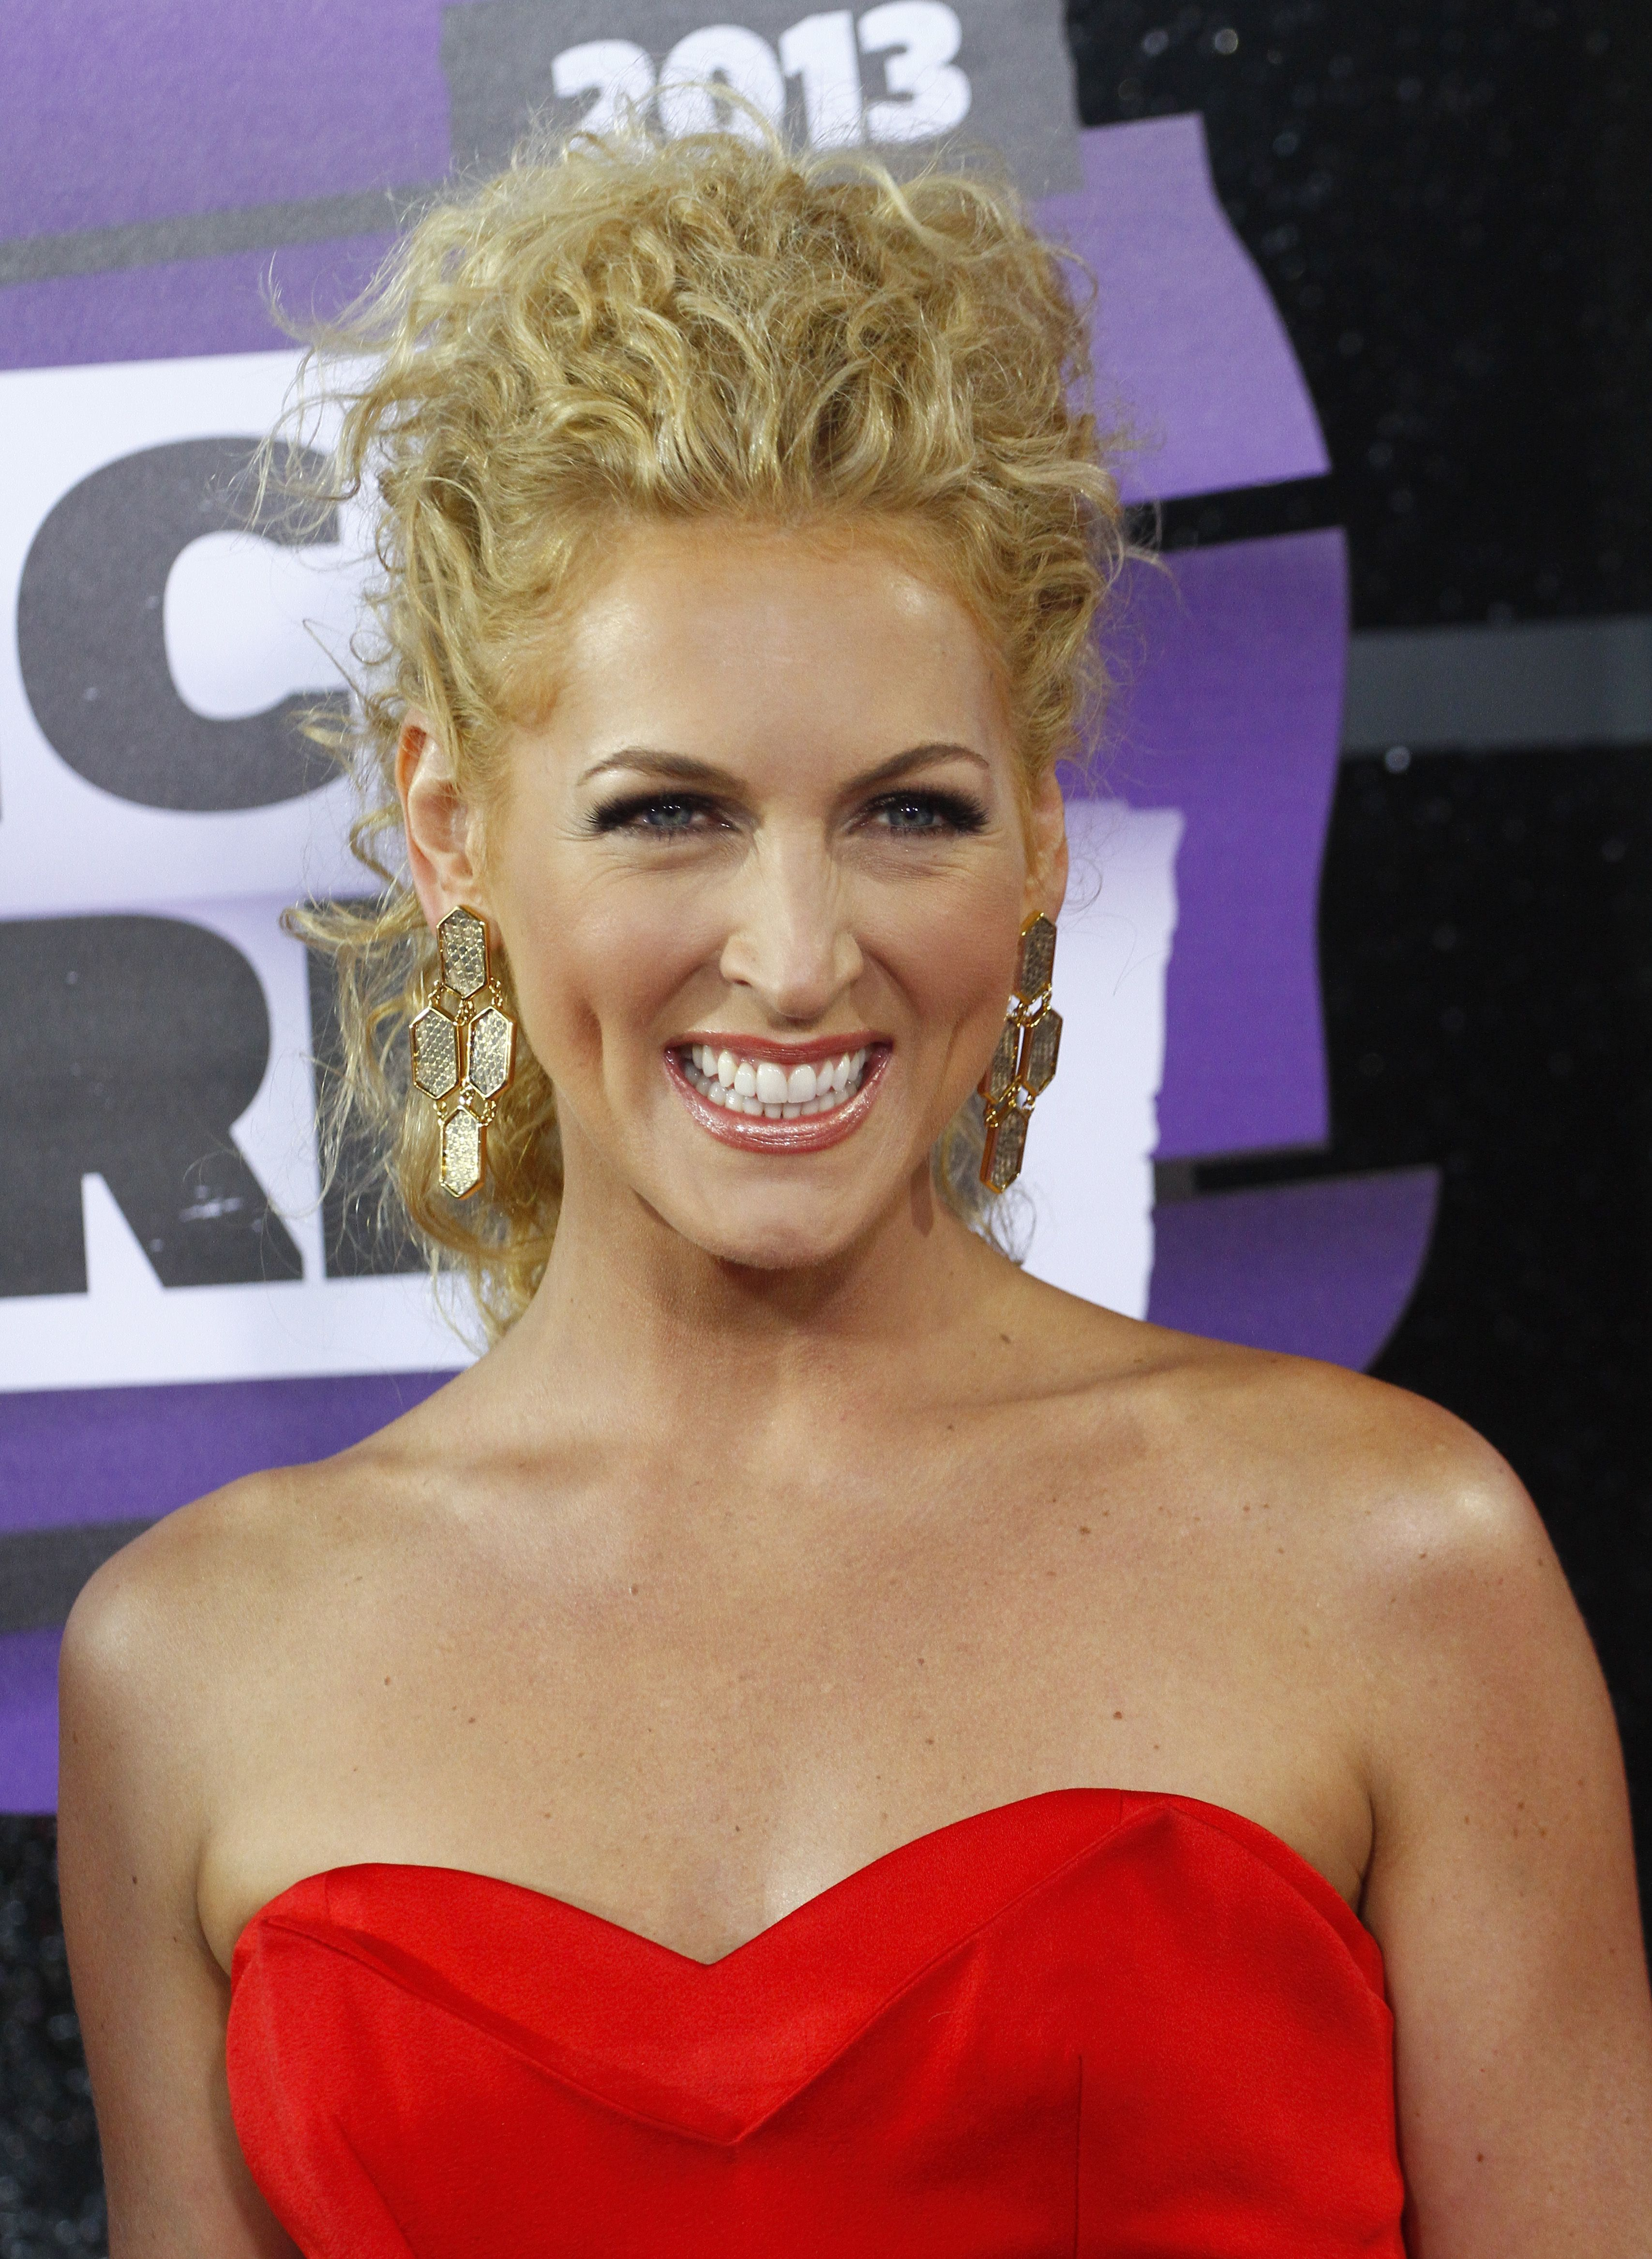 Kimberly Schlapman Crazy Curly Hair Curly Hair Styles